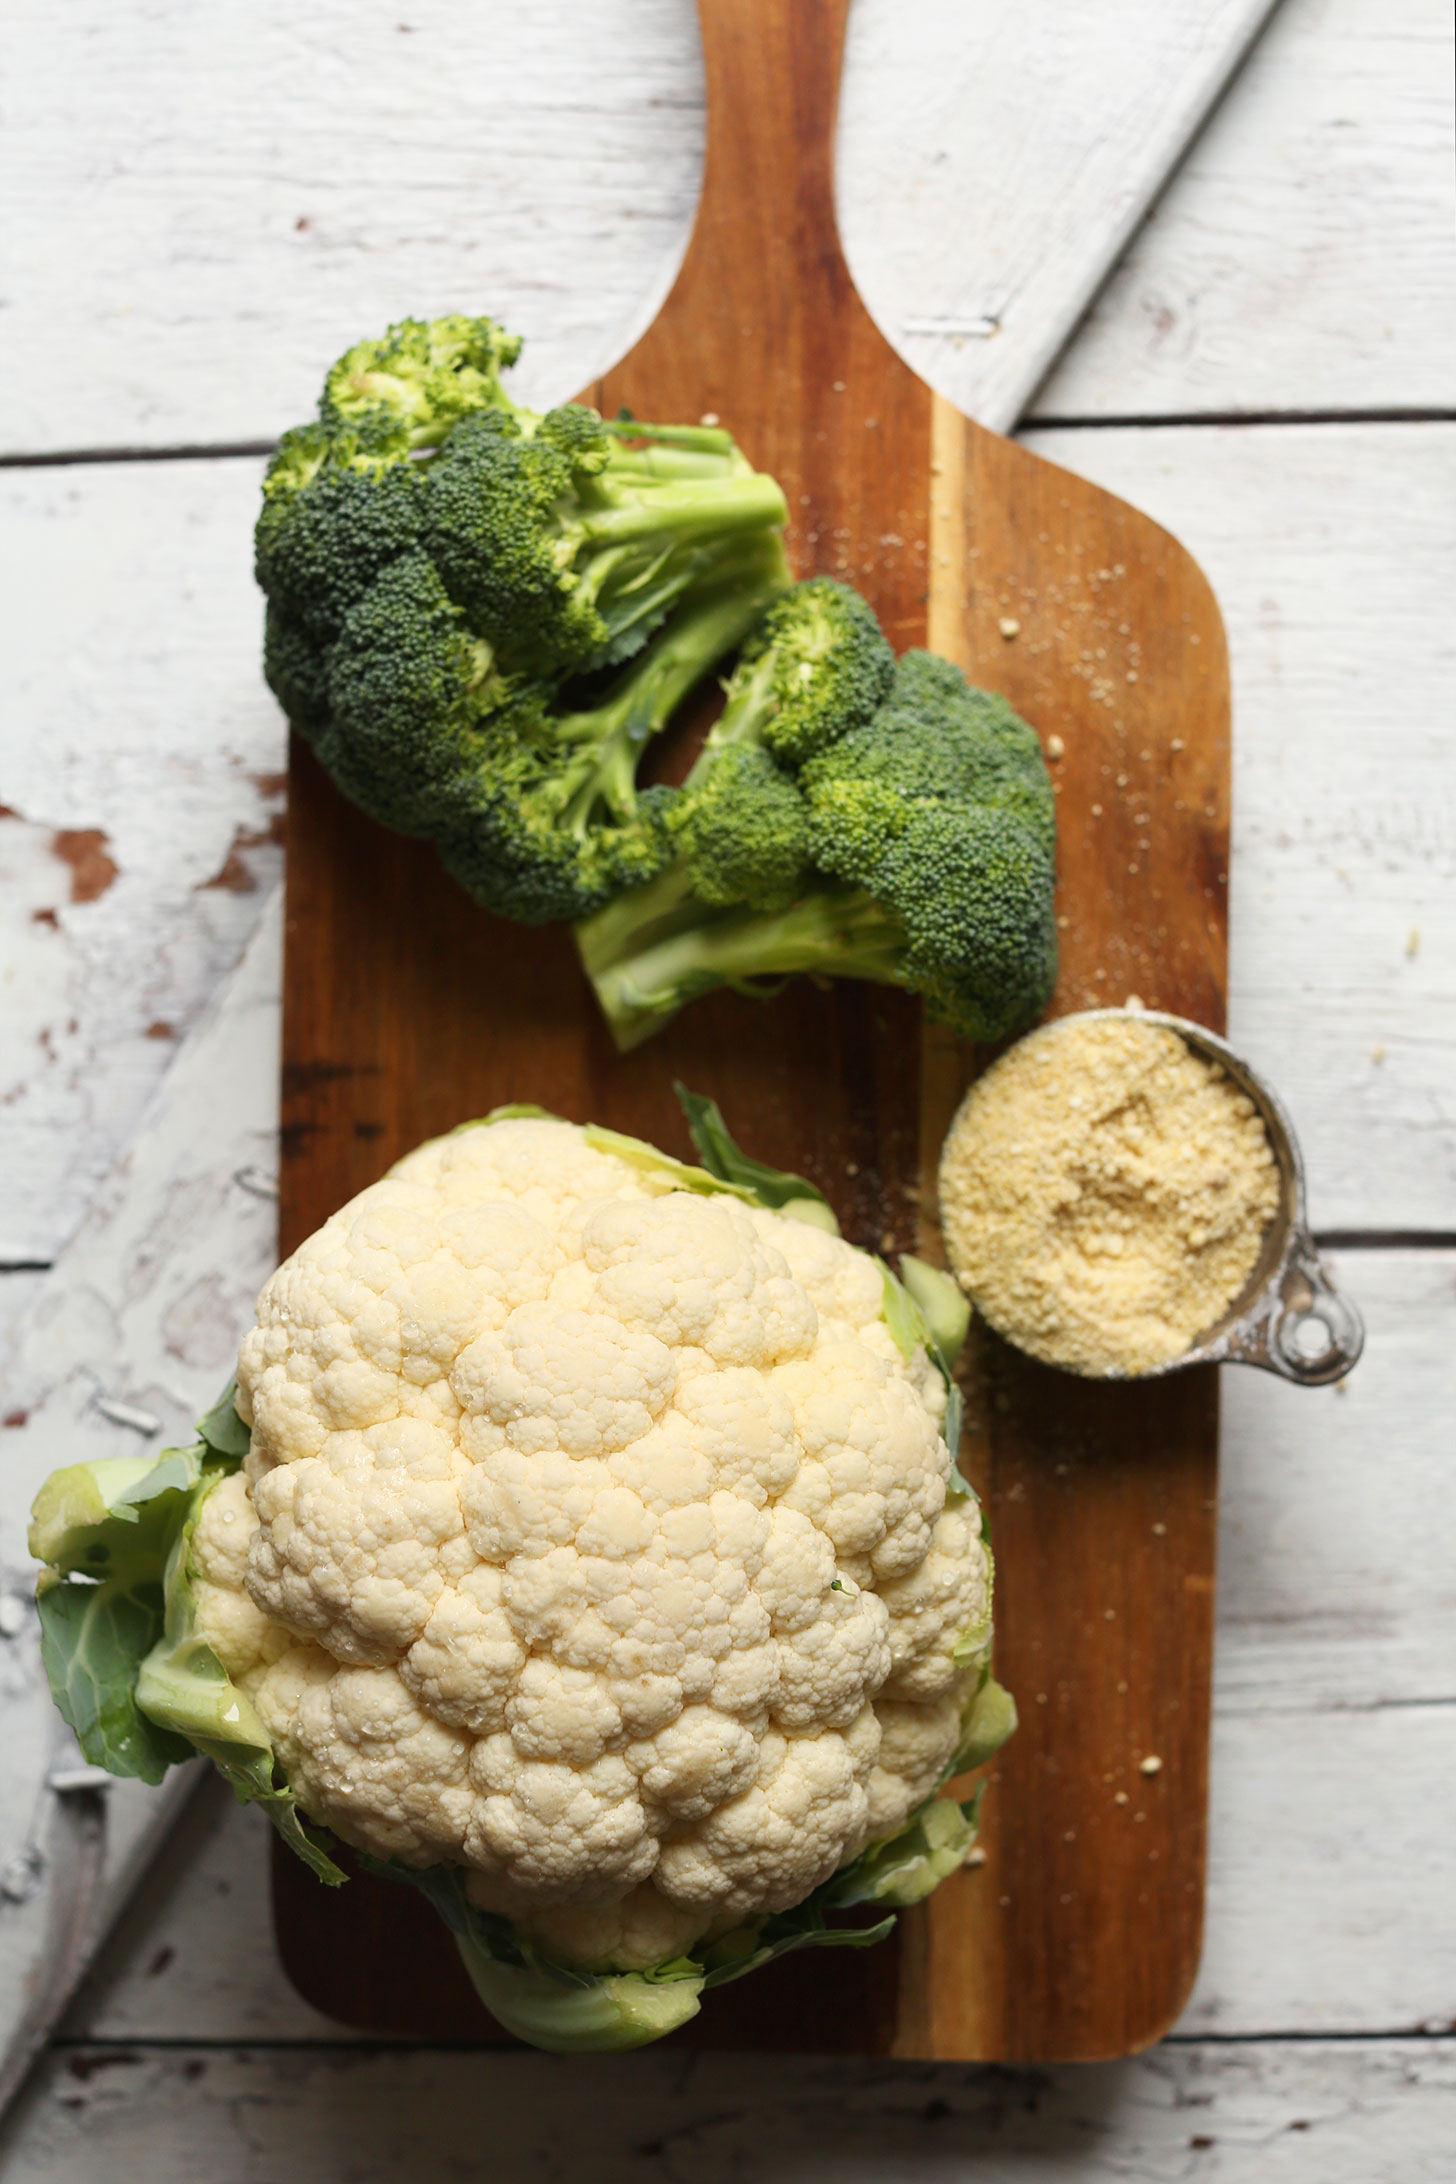 Broccoli, cauliflower, and vegan parmesan cheese for making healthy vegan comfort food